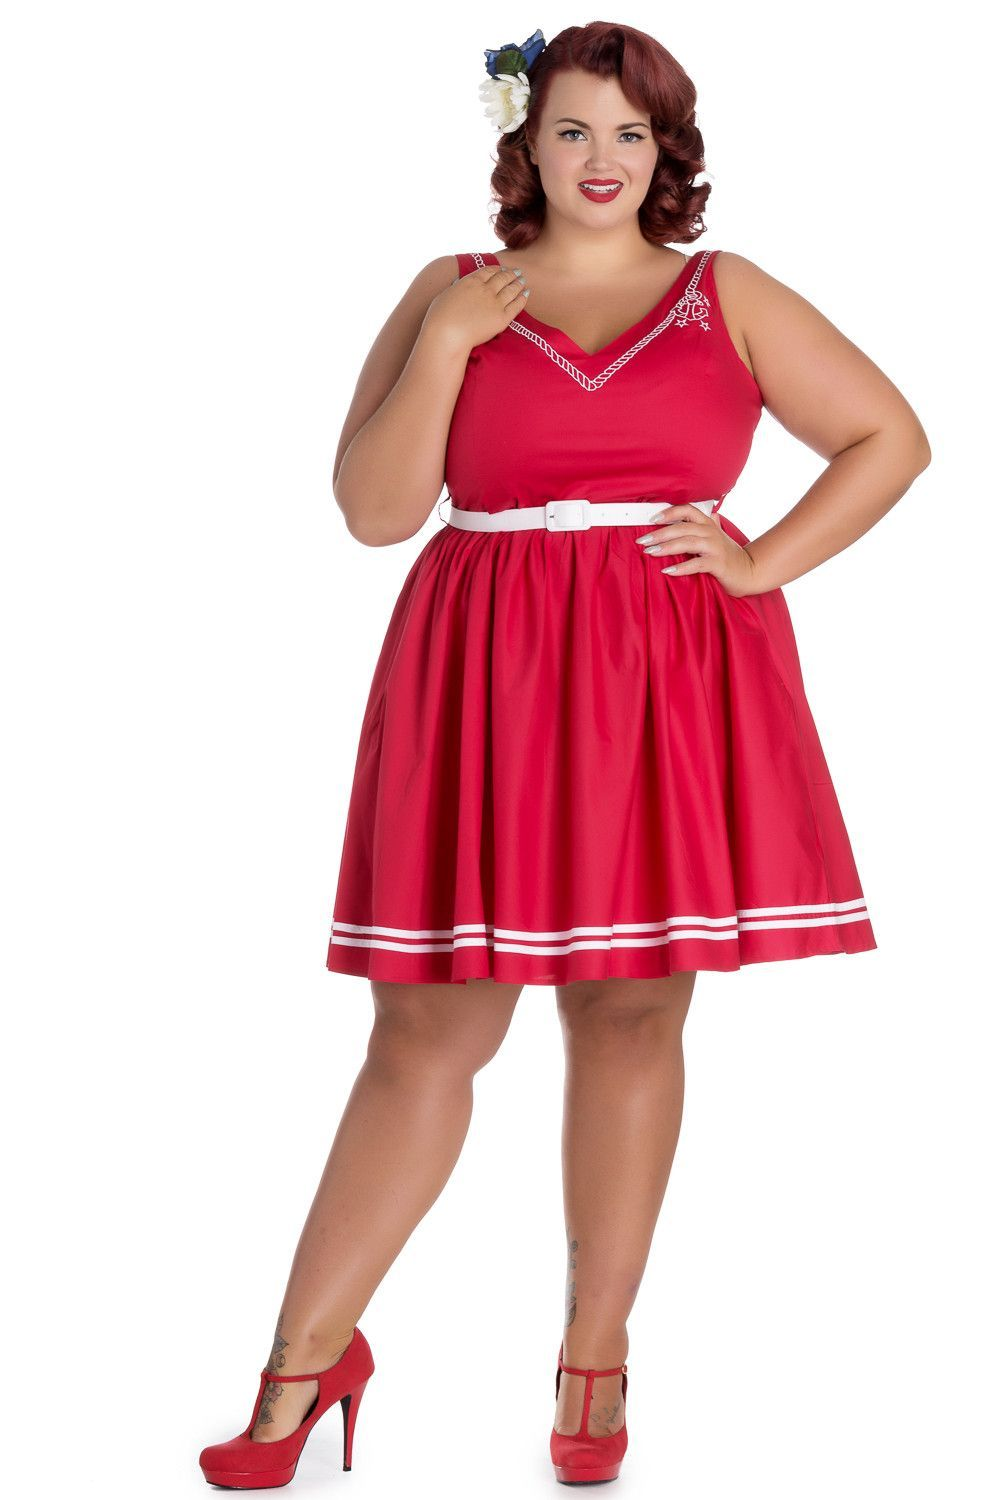 a3b1622cbc Hell Bunny Plus Size Pin-up Sailor Anchor   Rope V-neck Ariel Red Flare  Dress